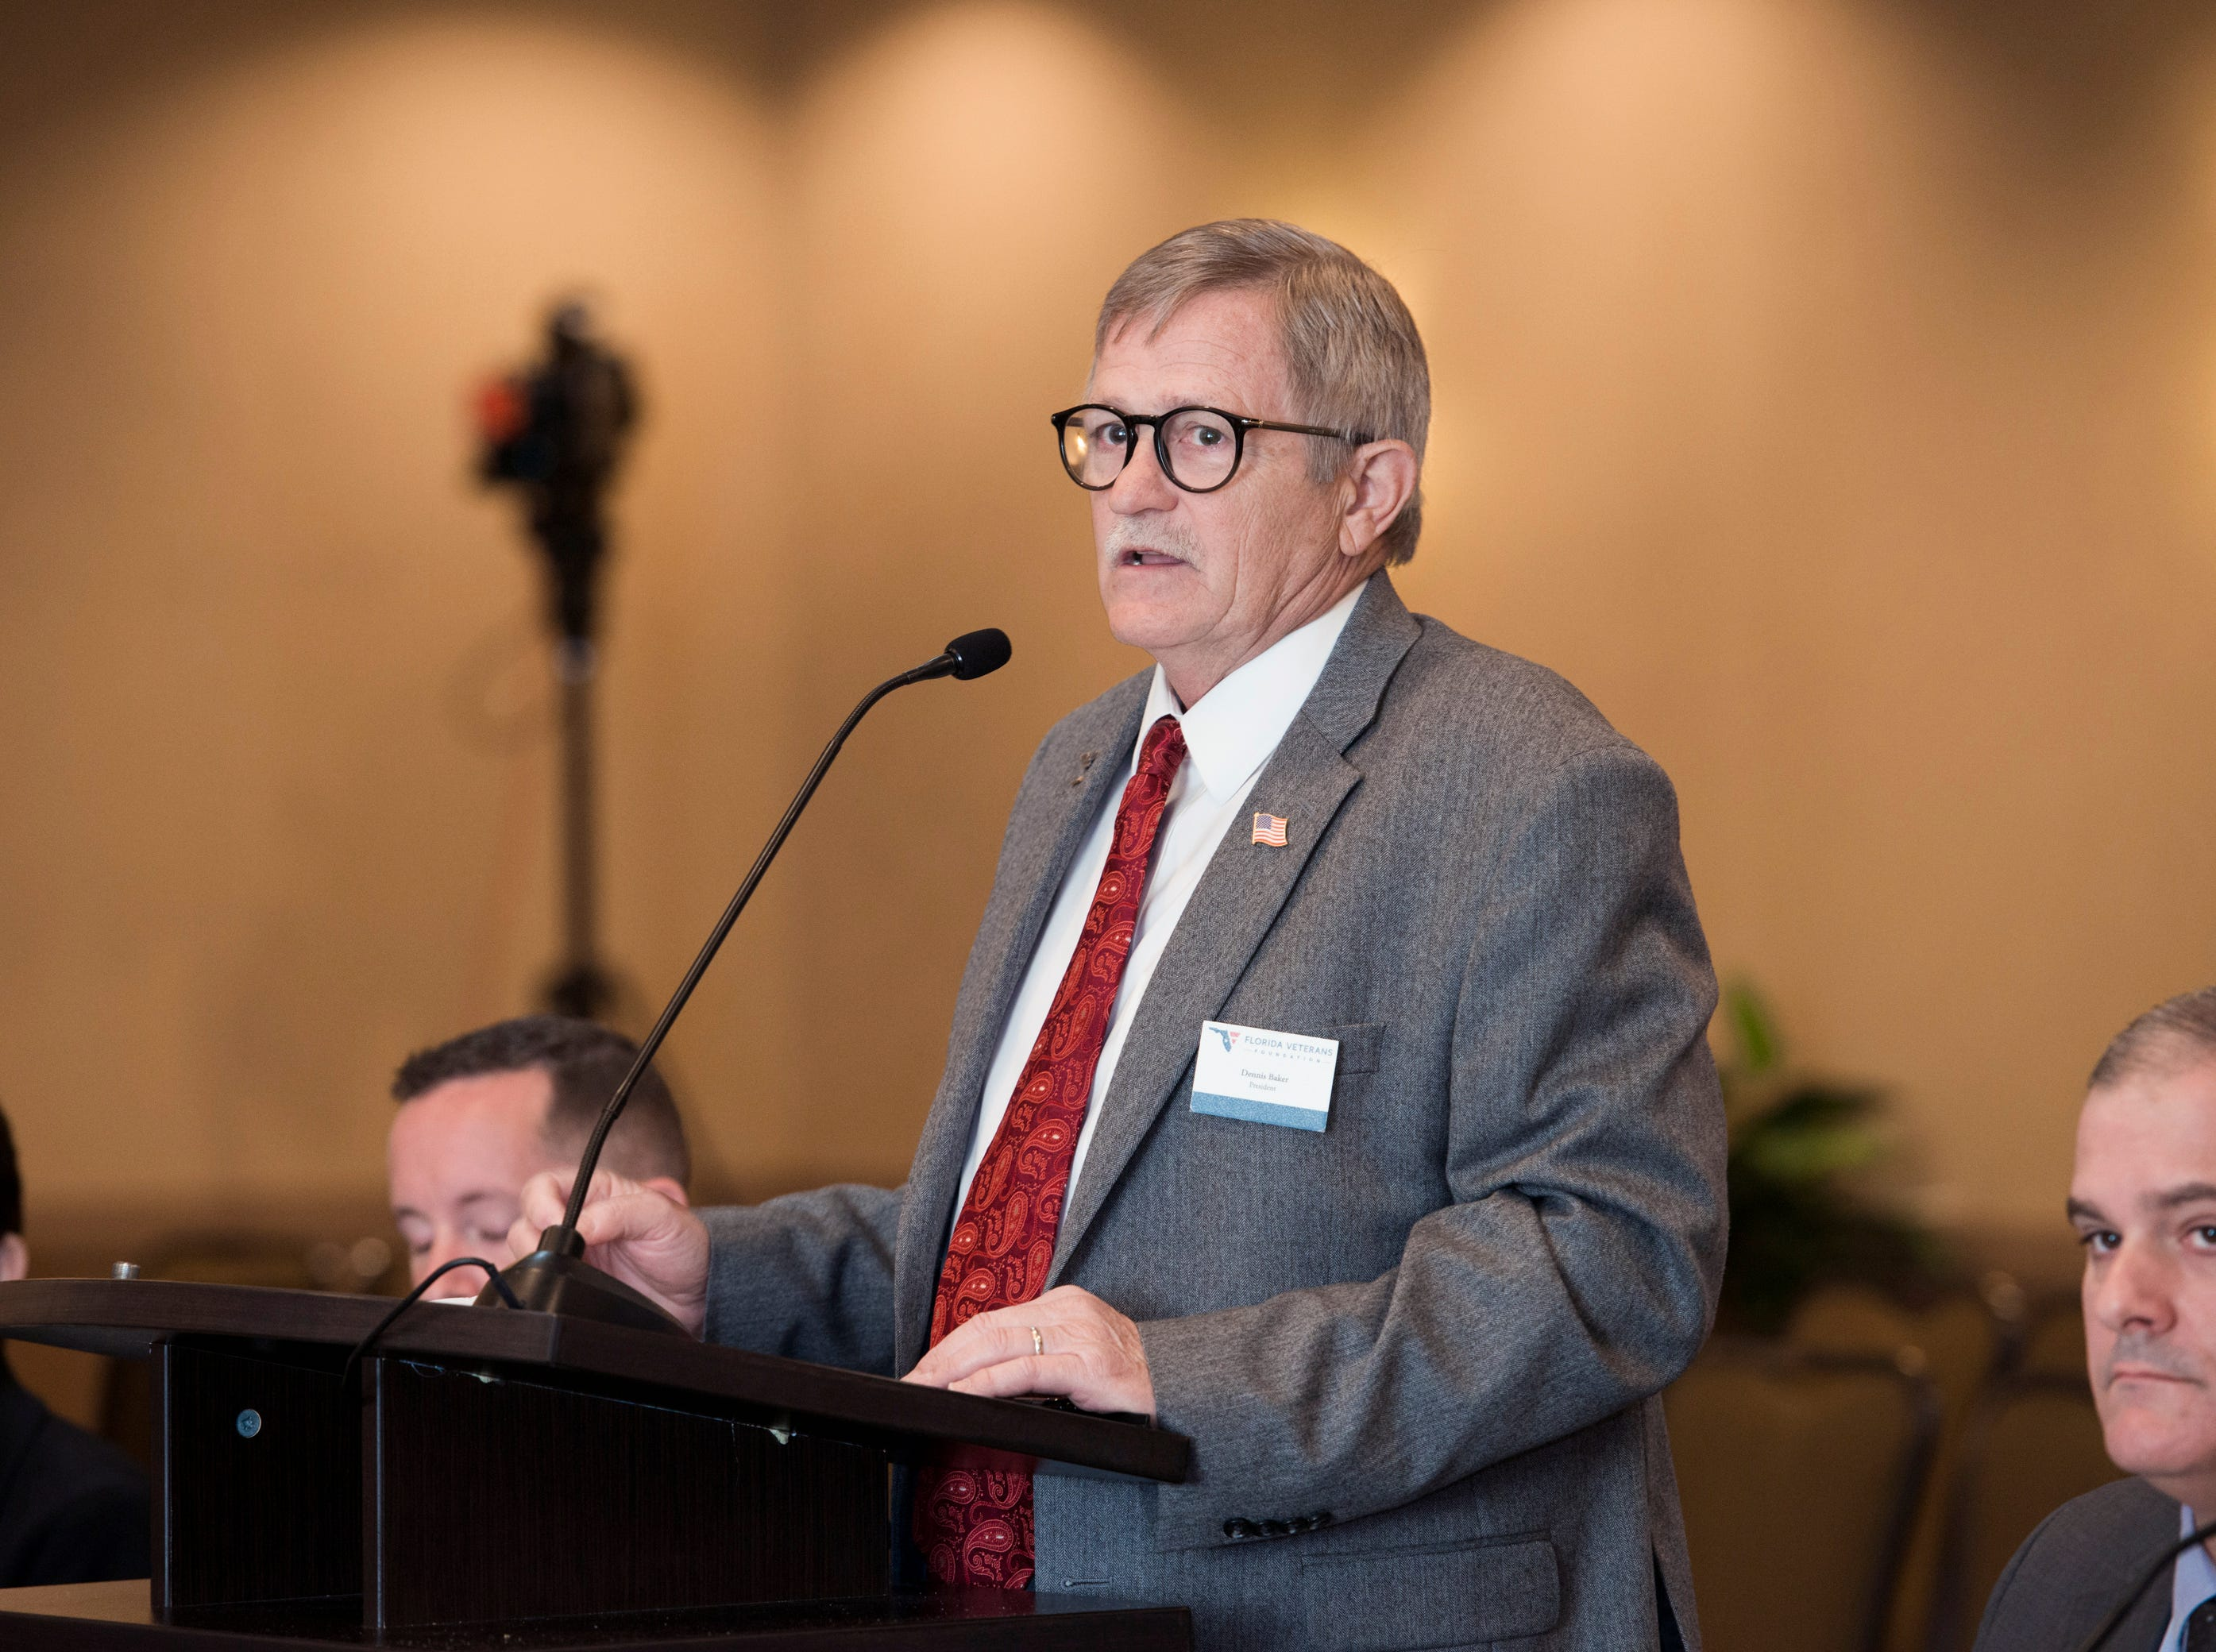 Florida Veterans Foundation president Dennis Baker speaks as the Florida Commission on Access to Civil Justice discusses veterans issues at the Hilton Garden Inn in Pensacola on Friday, August 10, 2018.